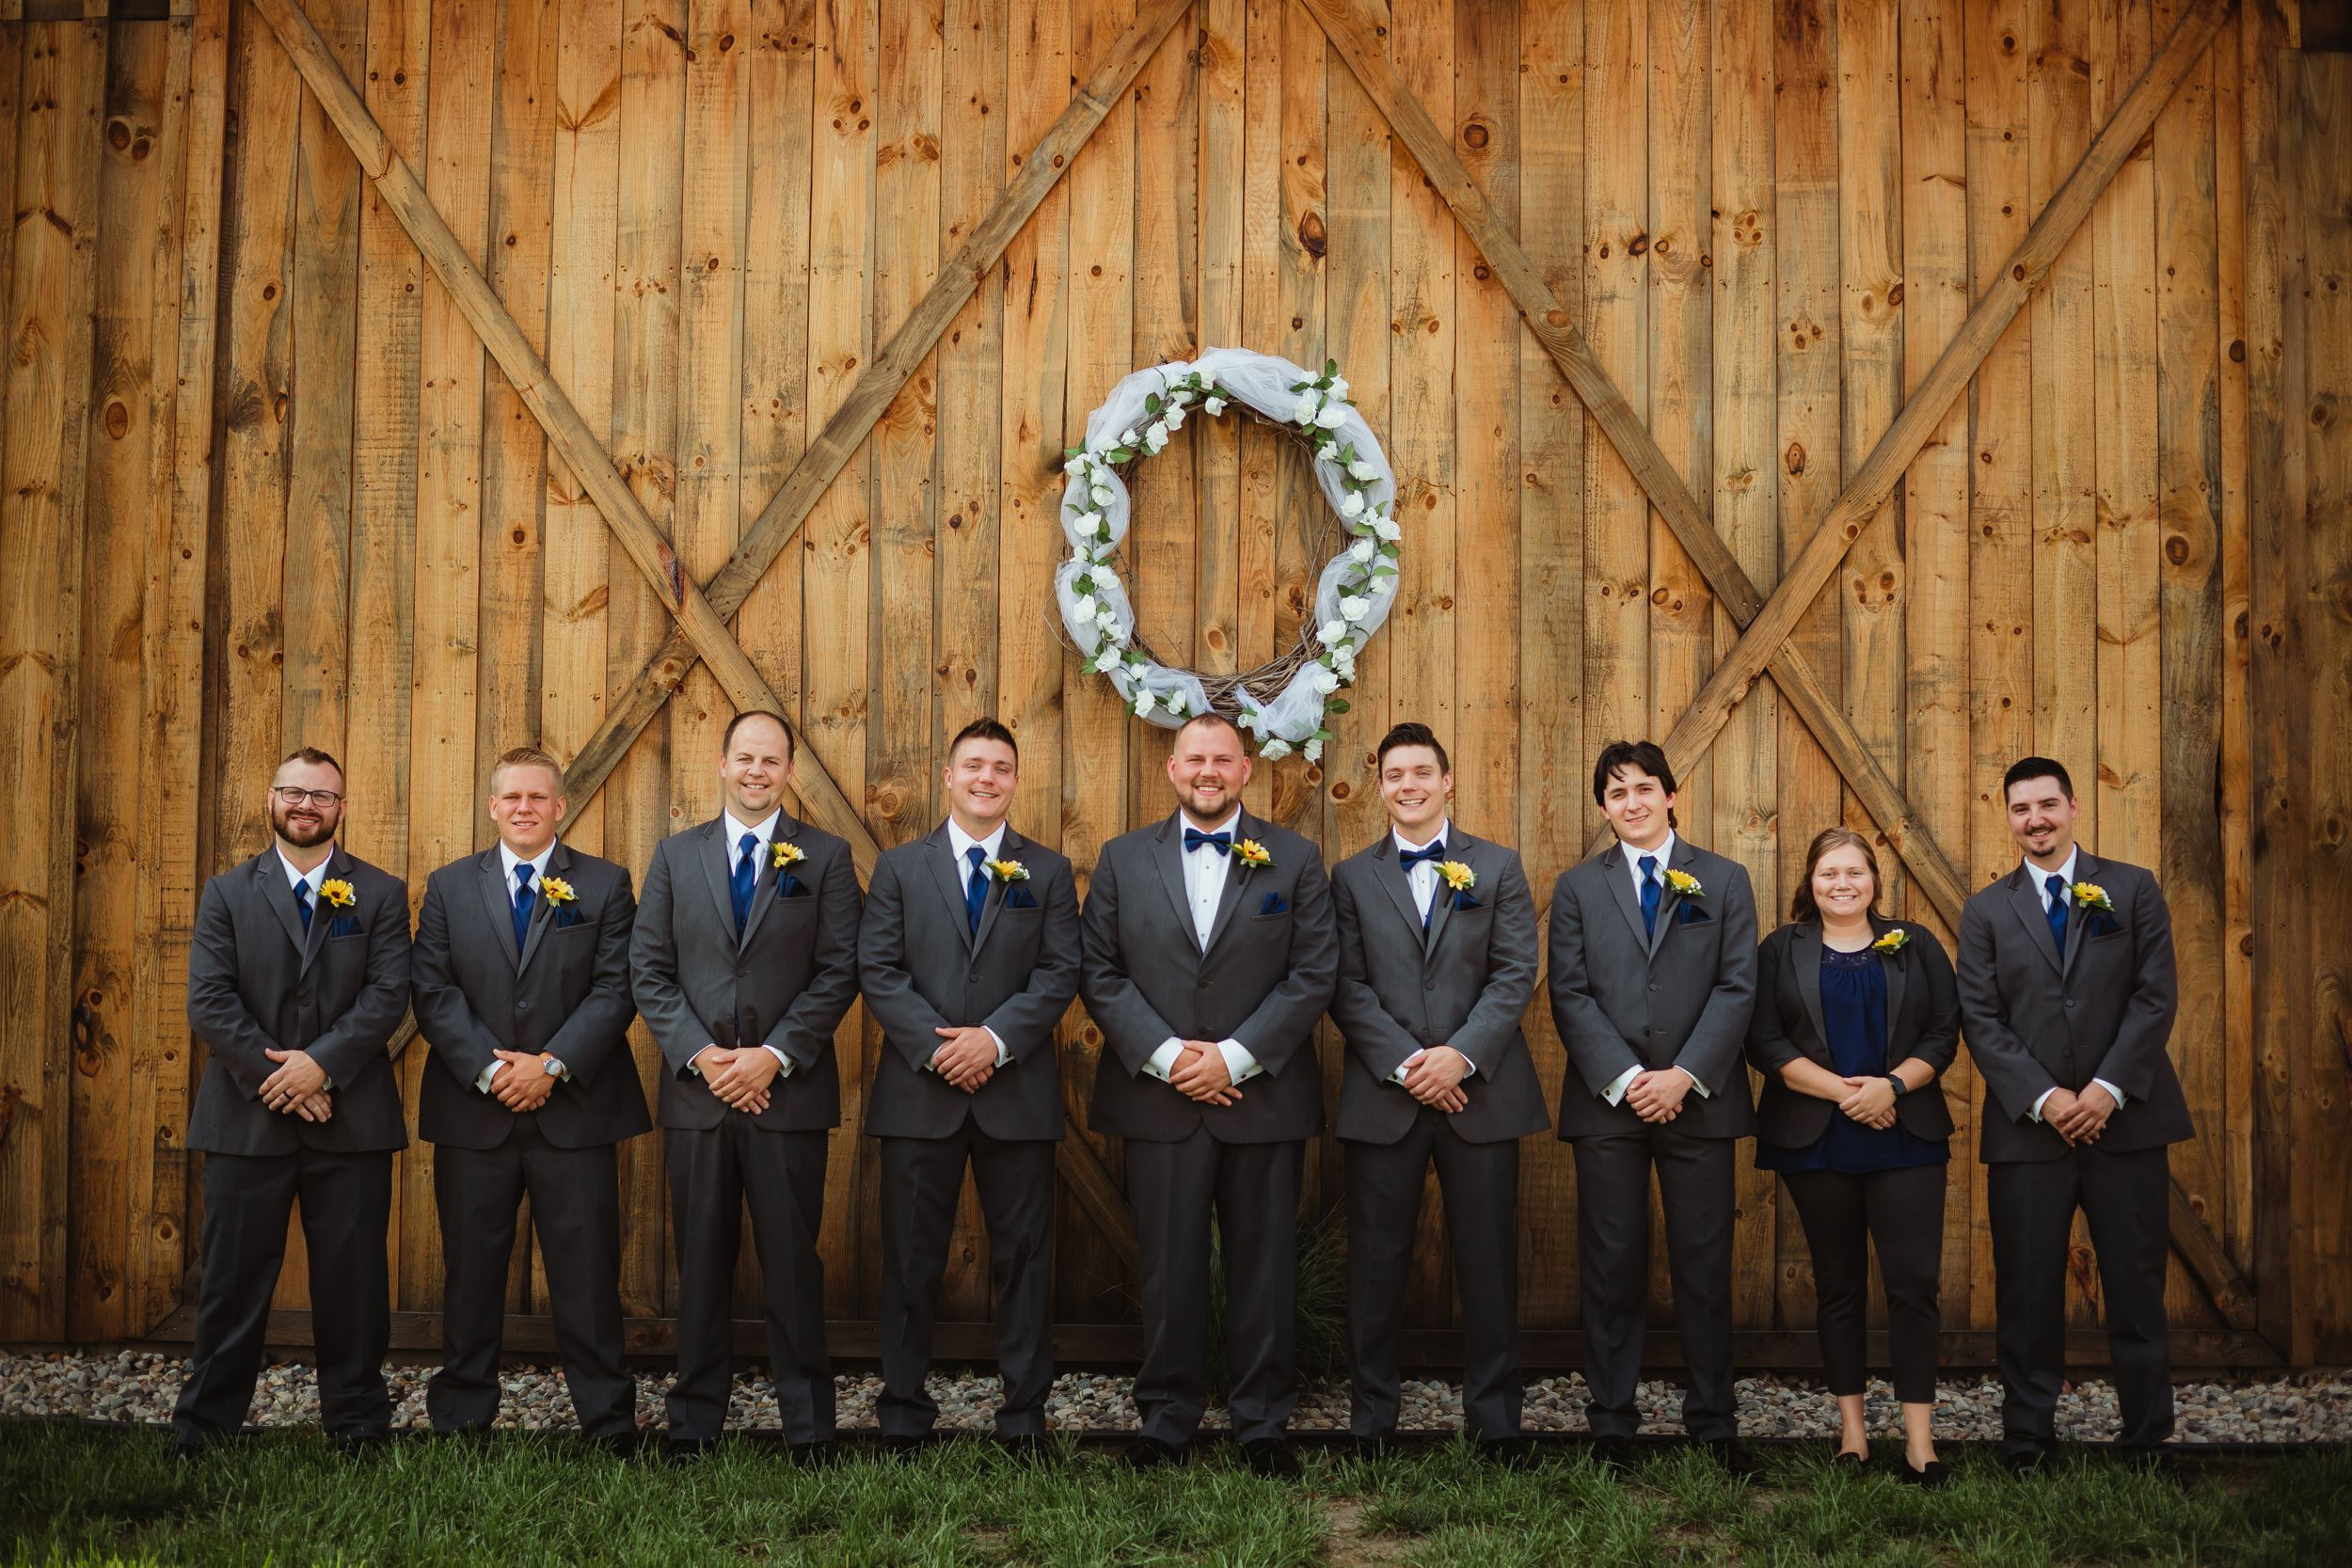 Groom, groomsmen, and one woman in dark grey suits with blue ties standing in front of the barn.